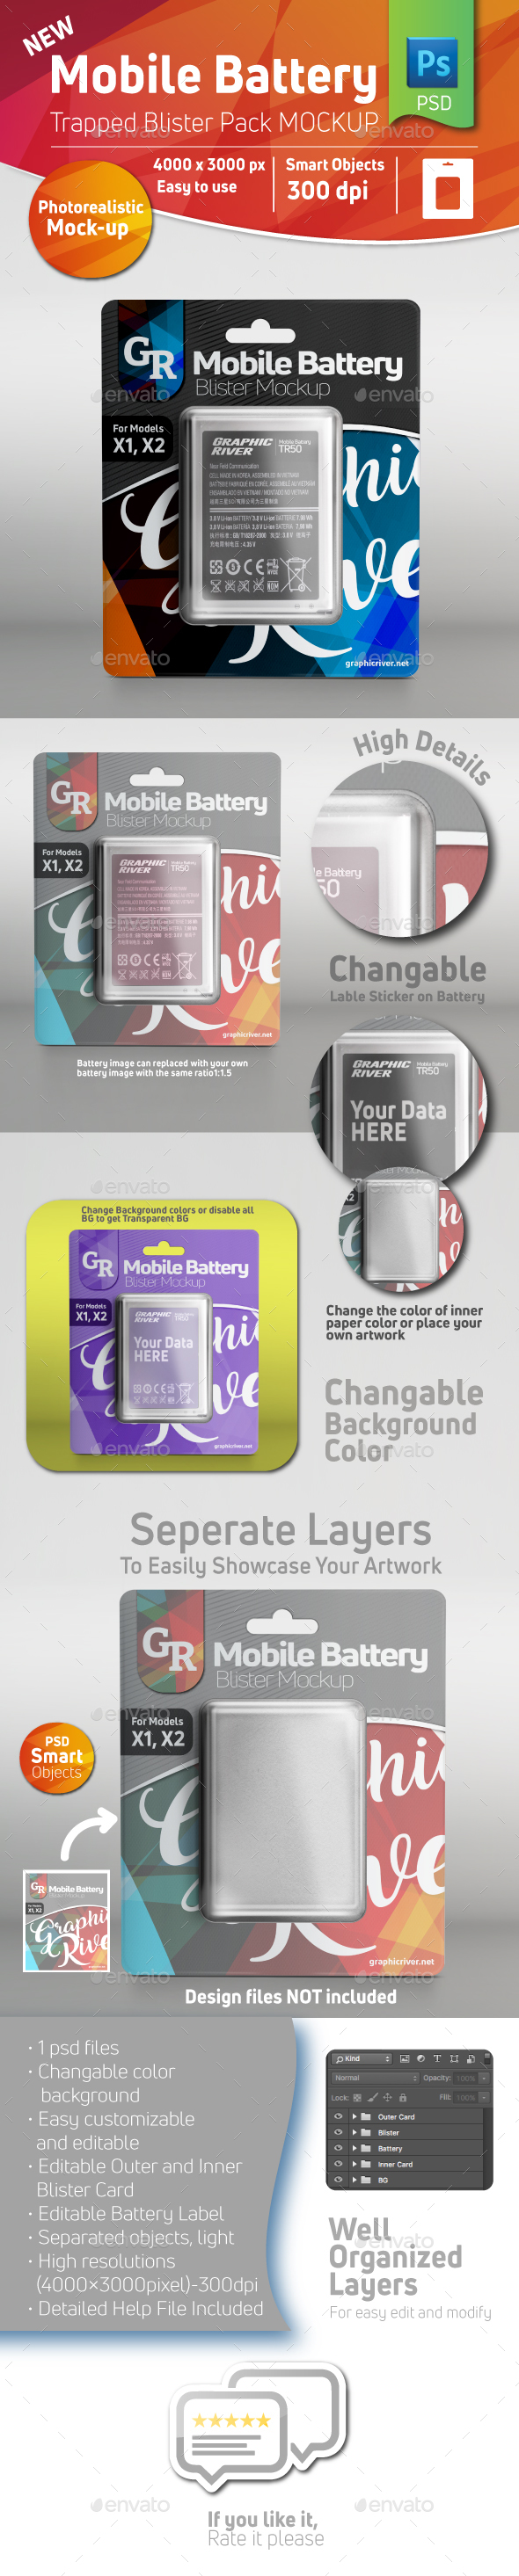 GraphicRiver Mobile Battery Trapped Blister Pack Mockup With Battery Inside 20982253